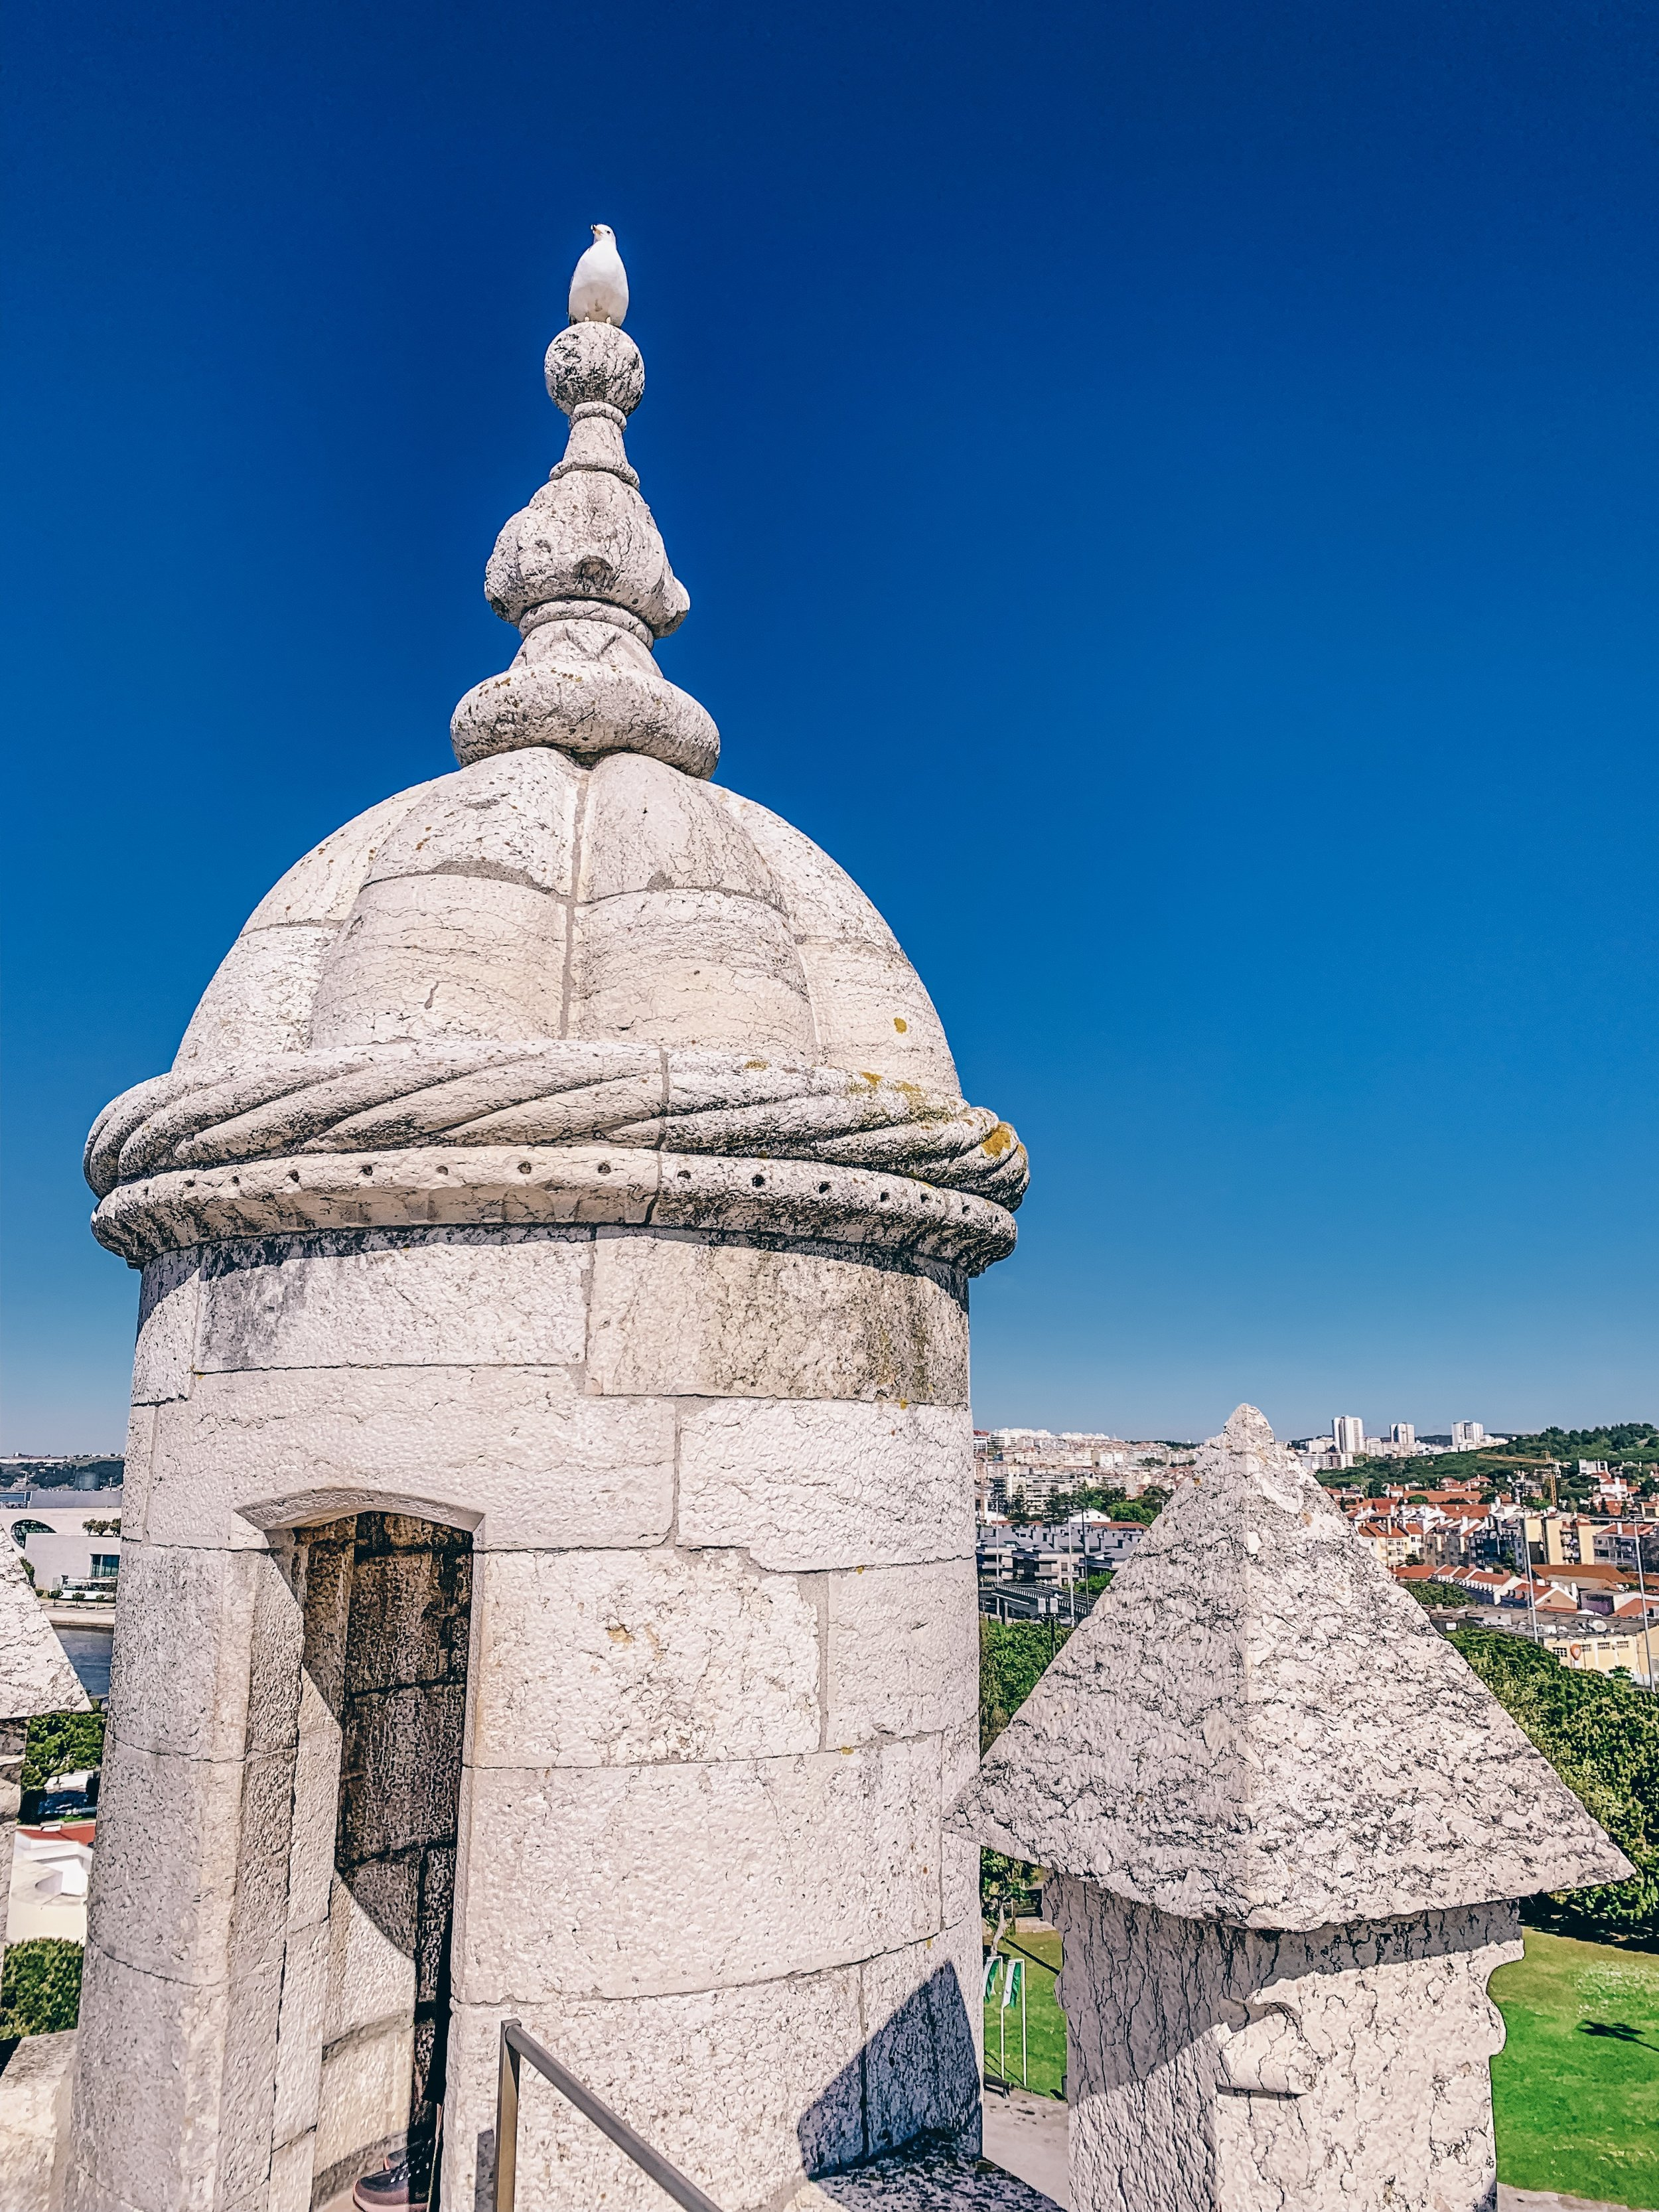 At the top of Belem Tower